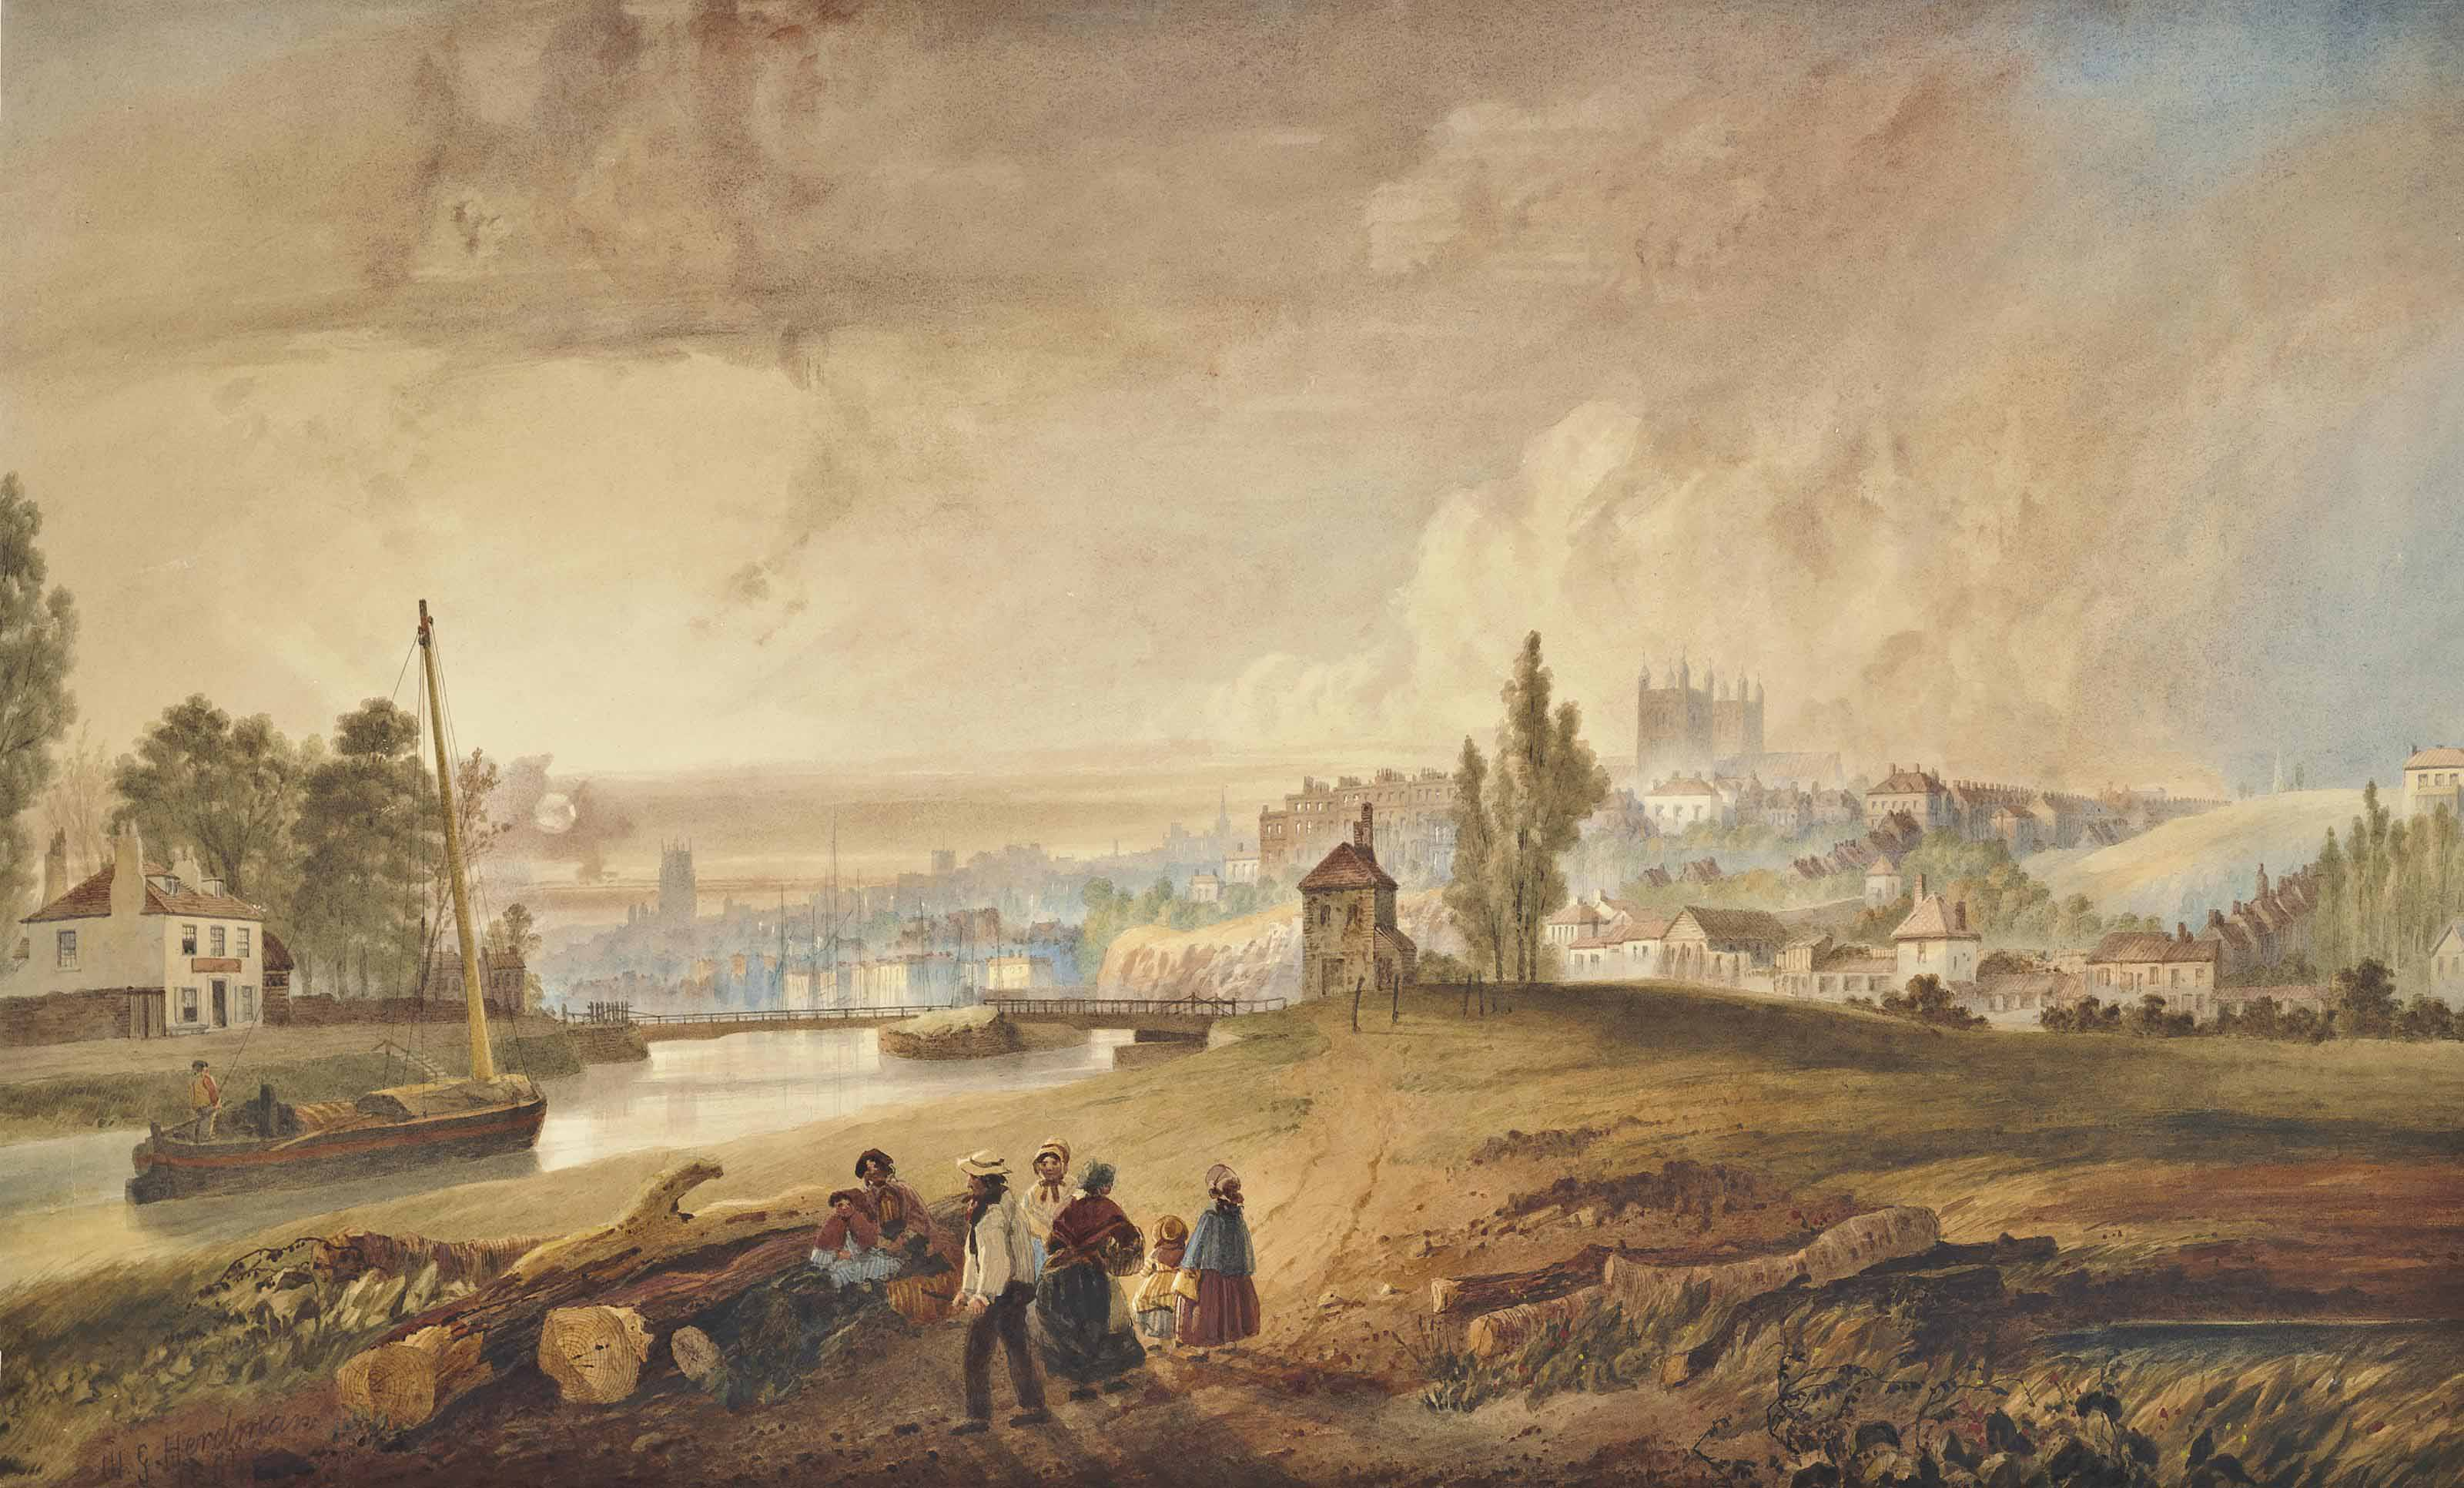 Southeast view of the City of Exeter and its cathedral, early evening with figures in the foreground on the canal towpath